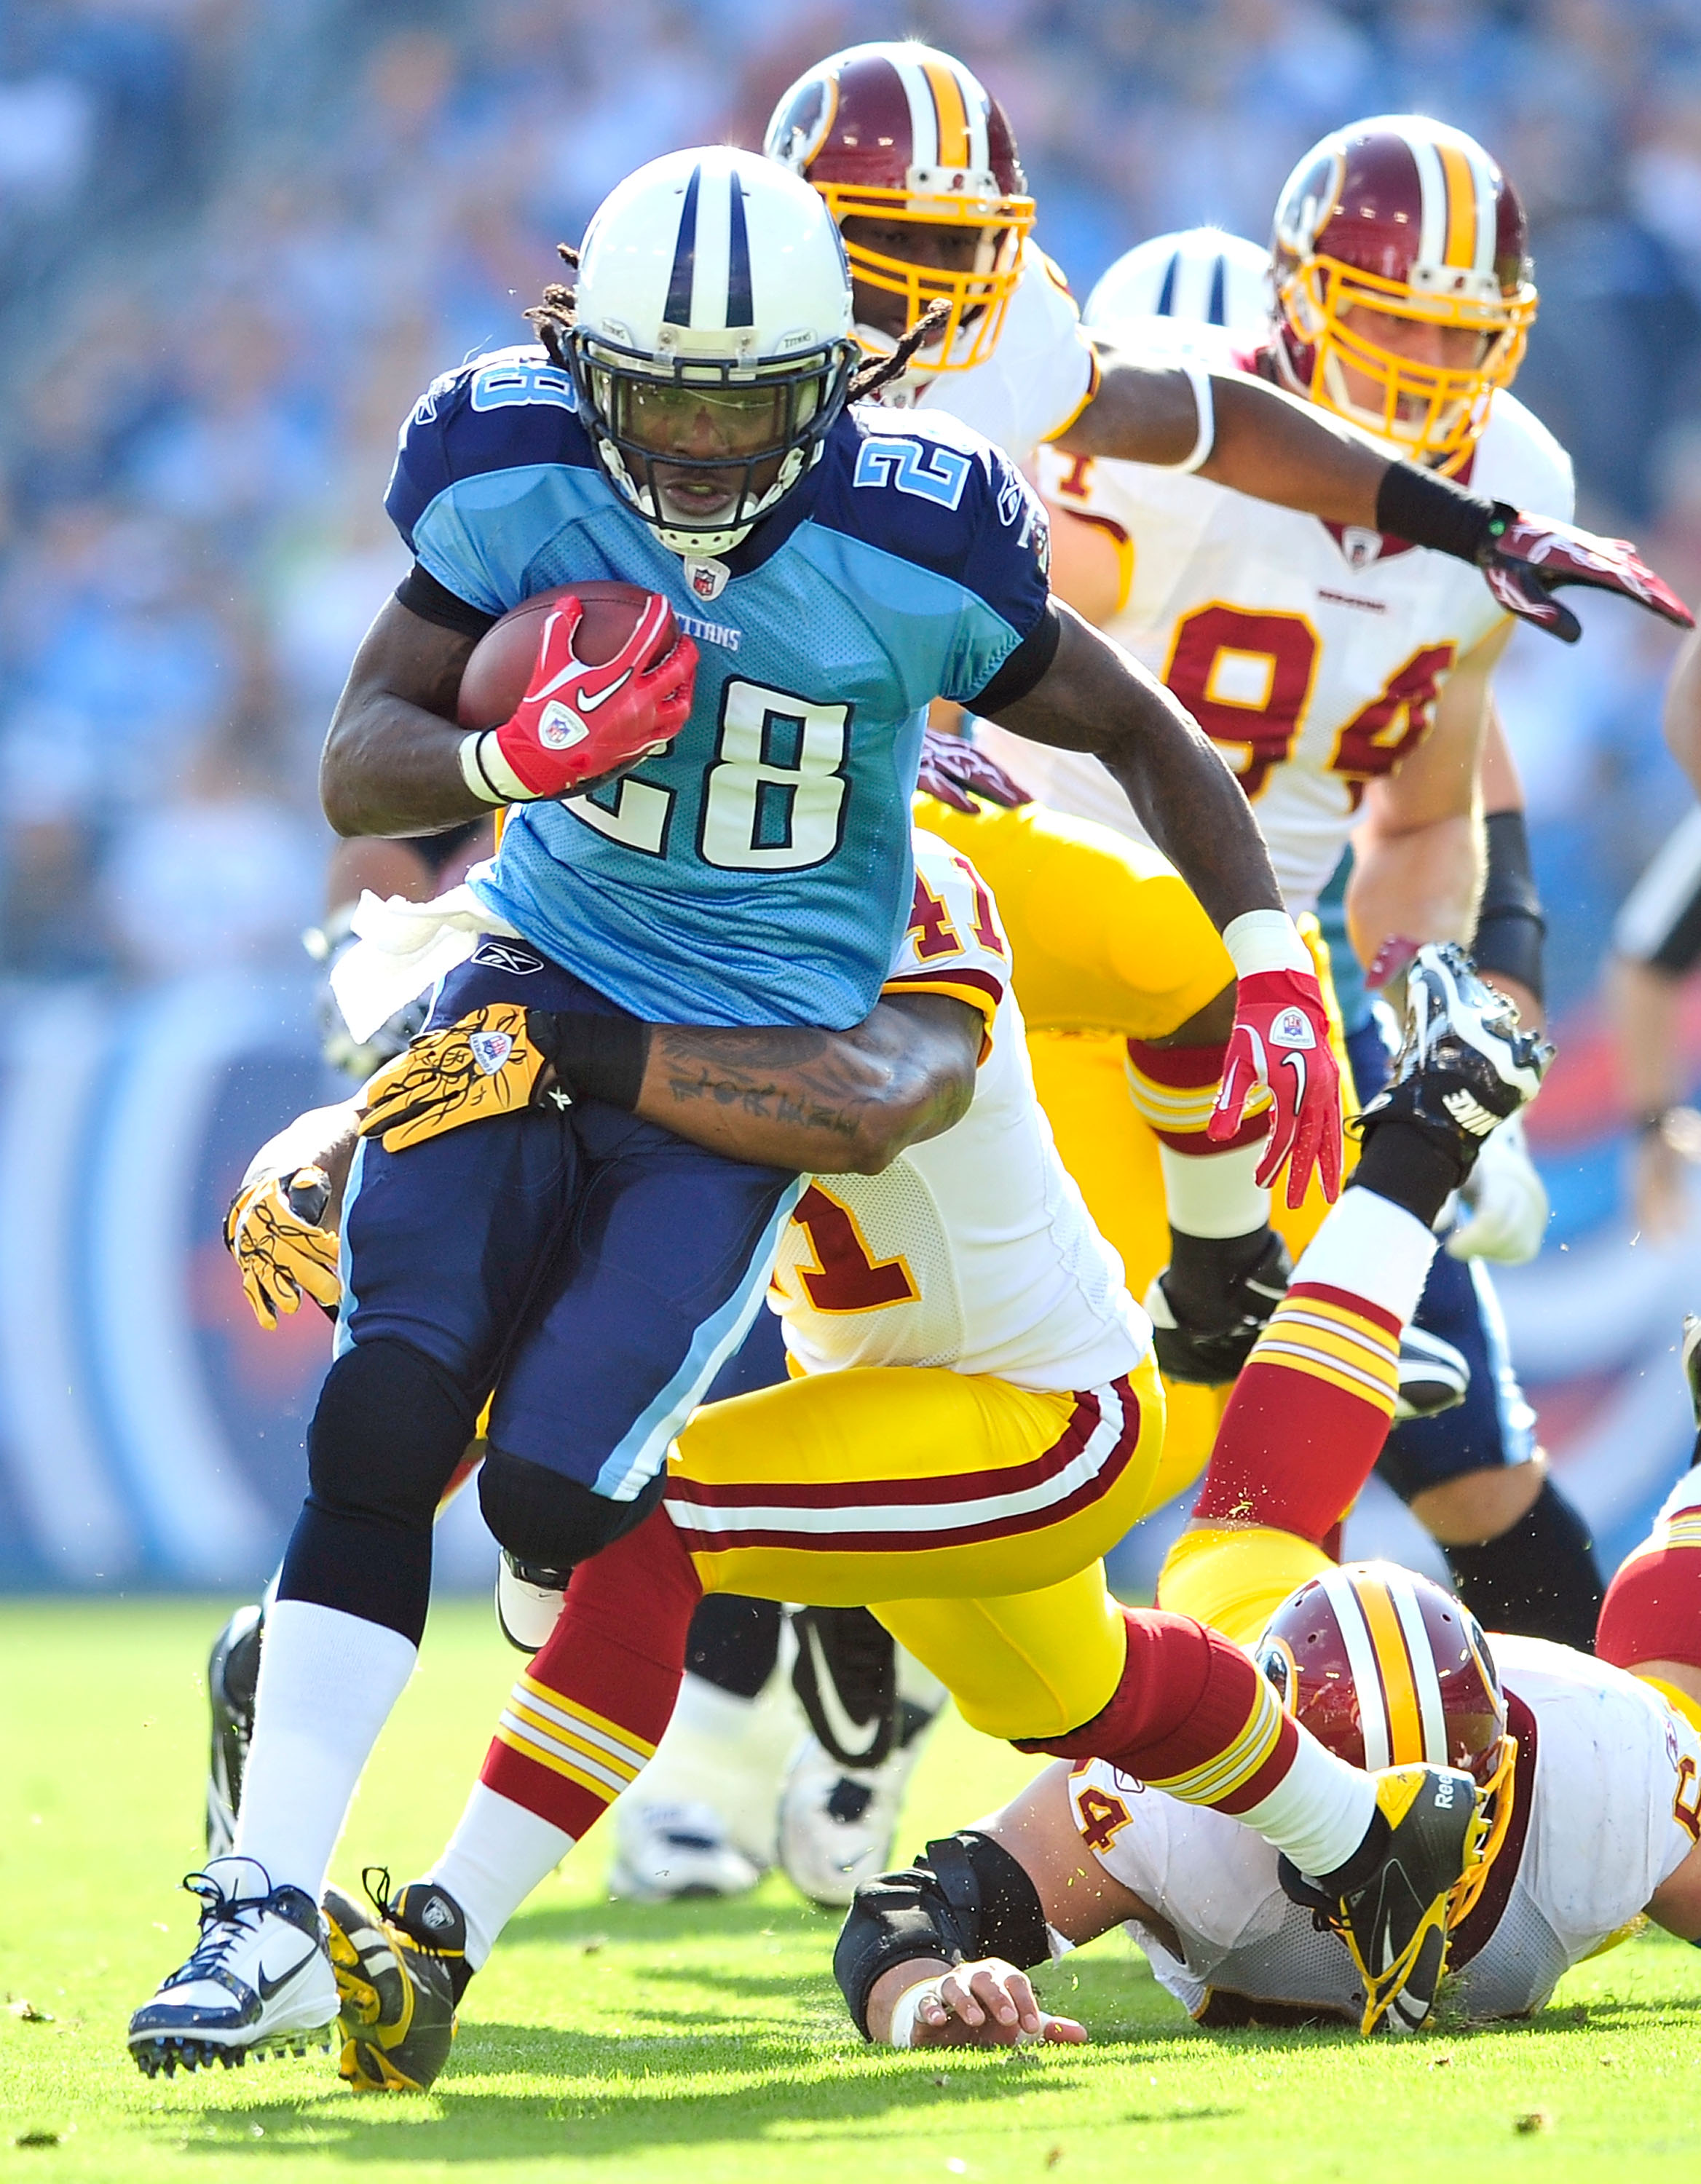 NASHVILLE, TN - NOVEMBER 21:  Kareem Moore #41 of the Washington Redskins tackles Chris Johnson #28 of the Tennessee Titans during the first half at LP Field on November 21, 2010 in Nashville, Tennessee.  (Photo by Grant Halverson/Getty Images)